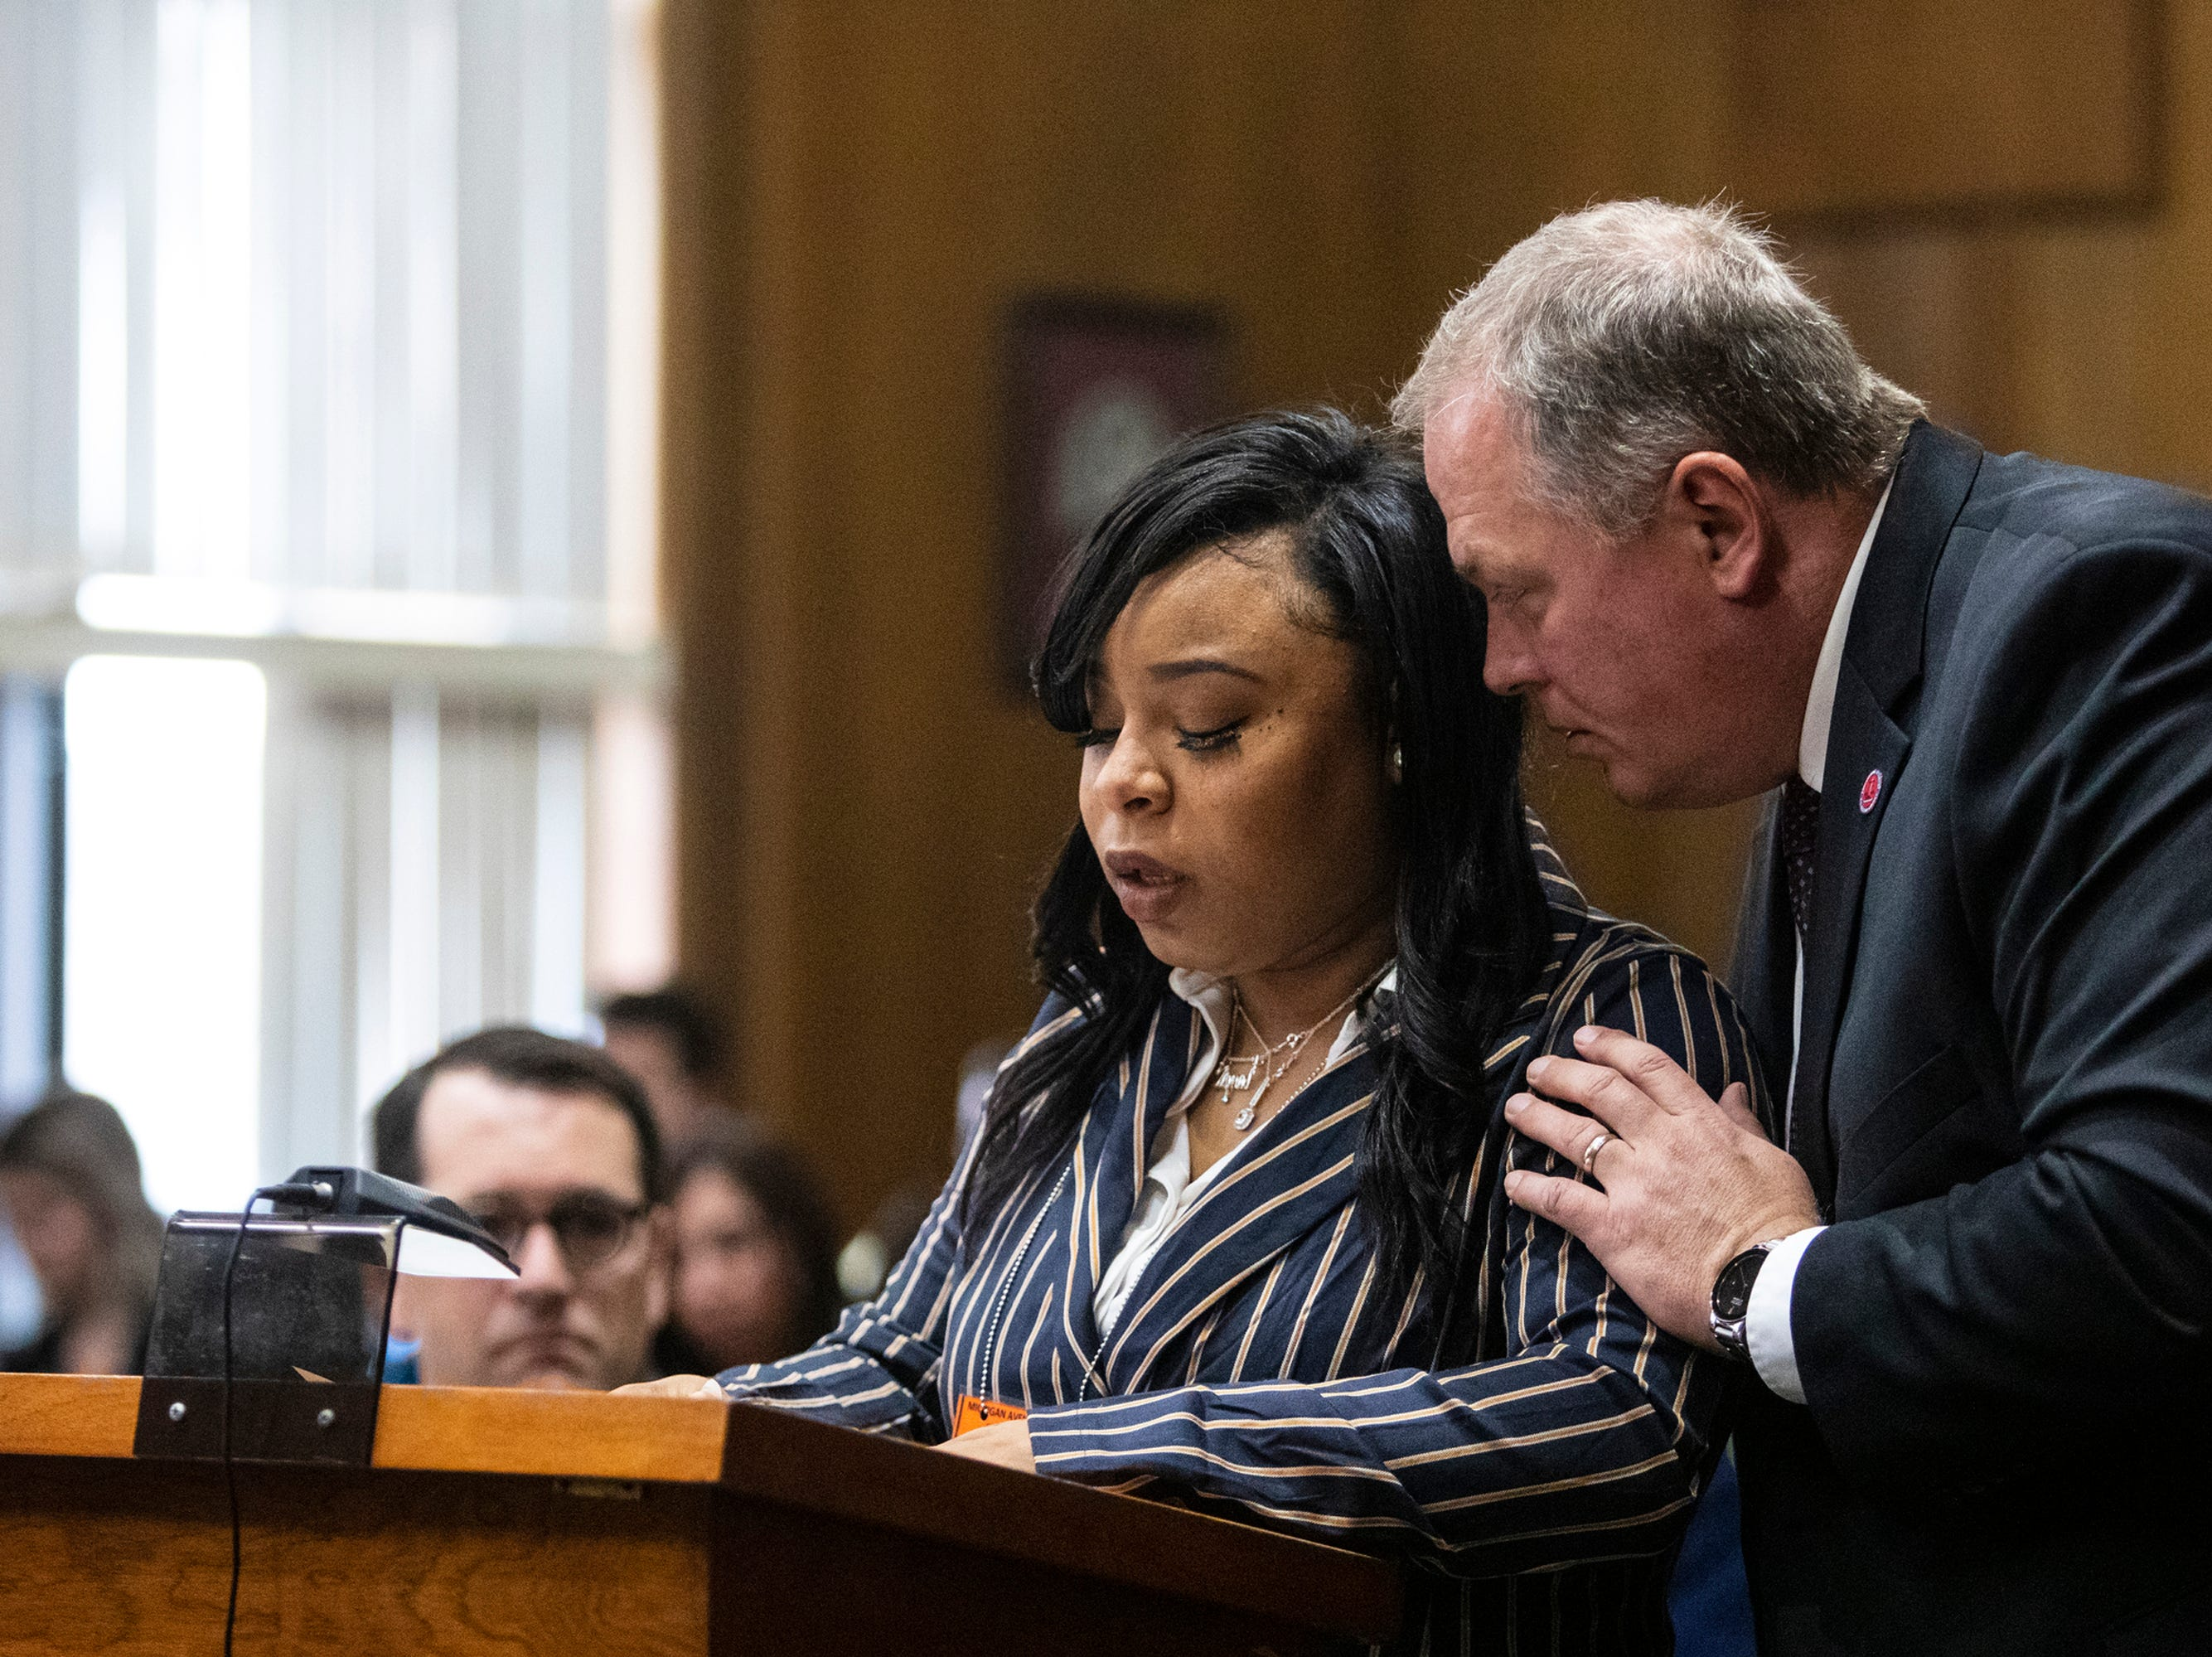 Kalamazoo County Prosecutor Jeff Getting whispers to Tiana Carruthers as she addresses Jason Dalton before he is sentenced to life in prison without possibility of parole for six counts of murder and several other charges at the Kalamazoo County Courthouse in Kalamazoo, Michigan on Tuesday, Feb. 5, 2019.